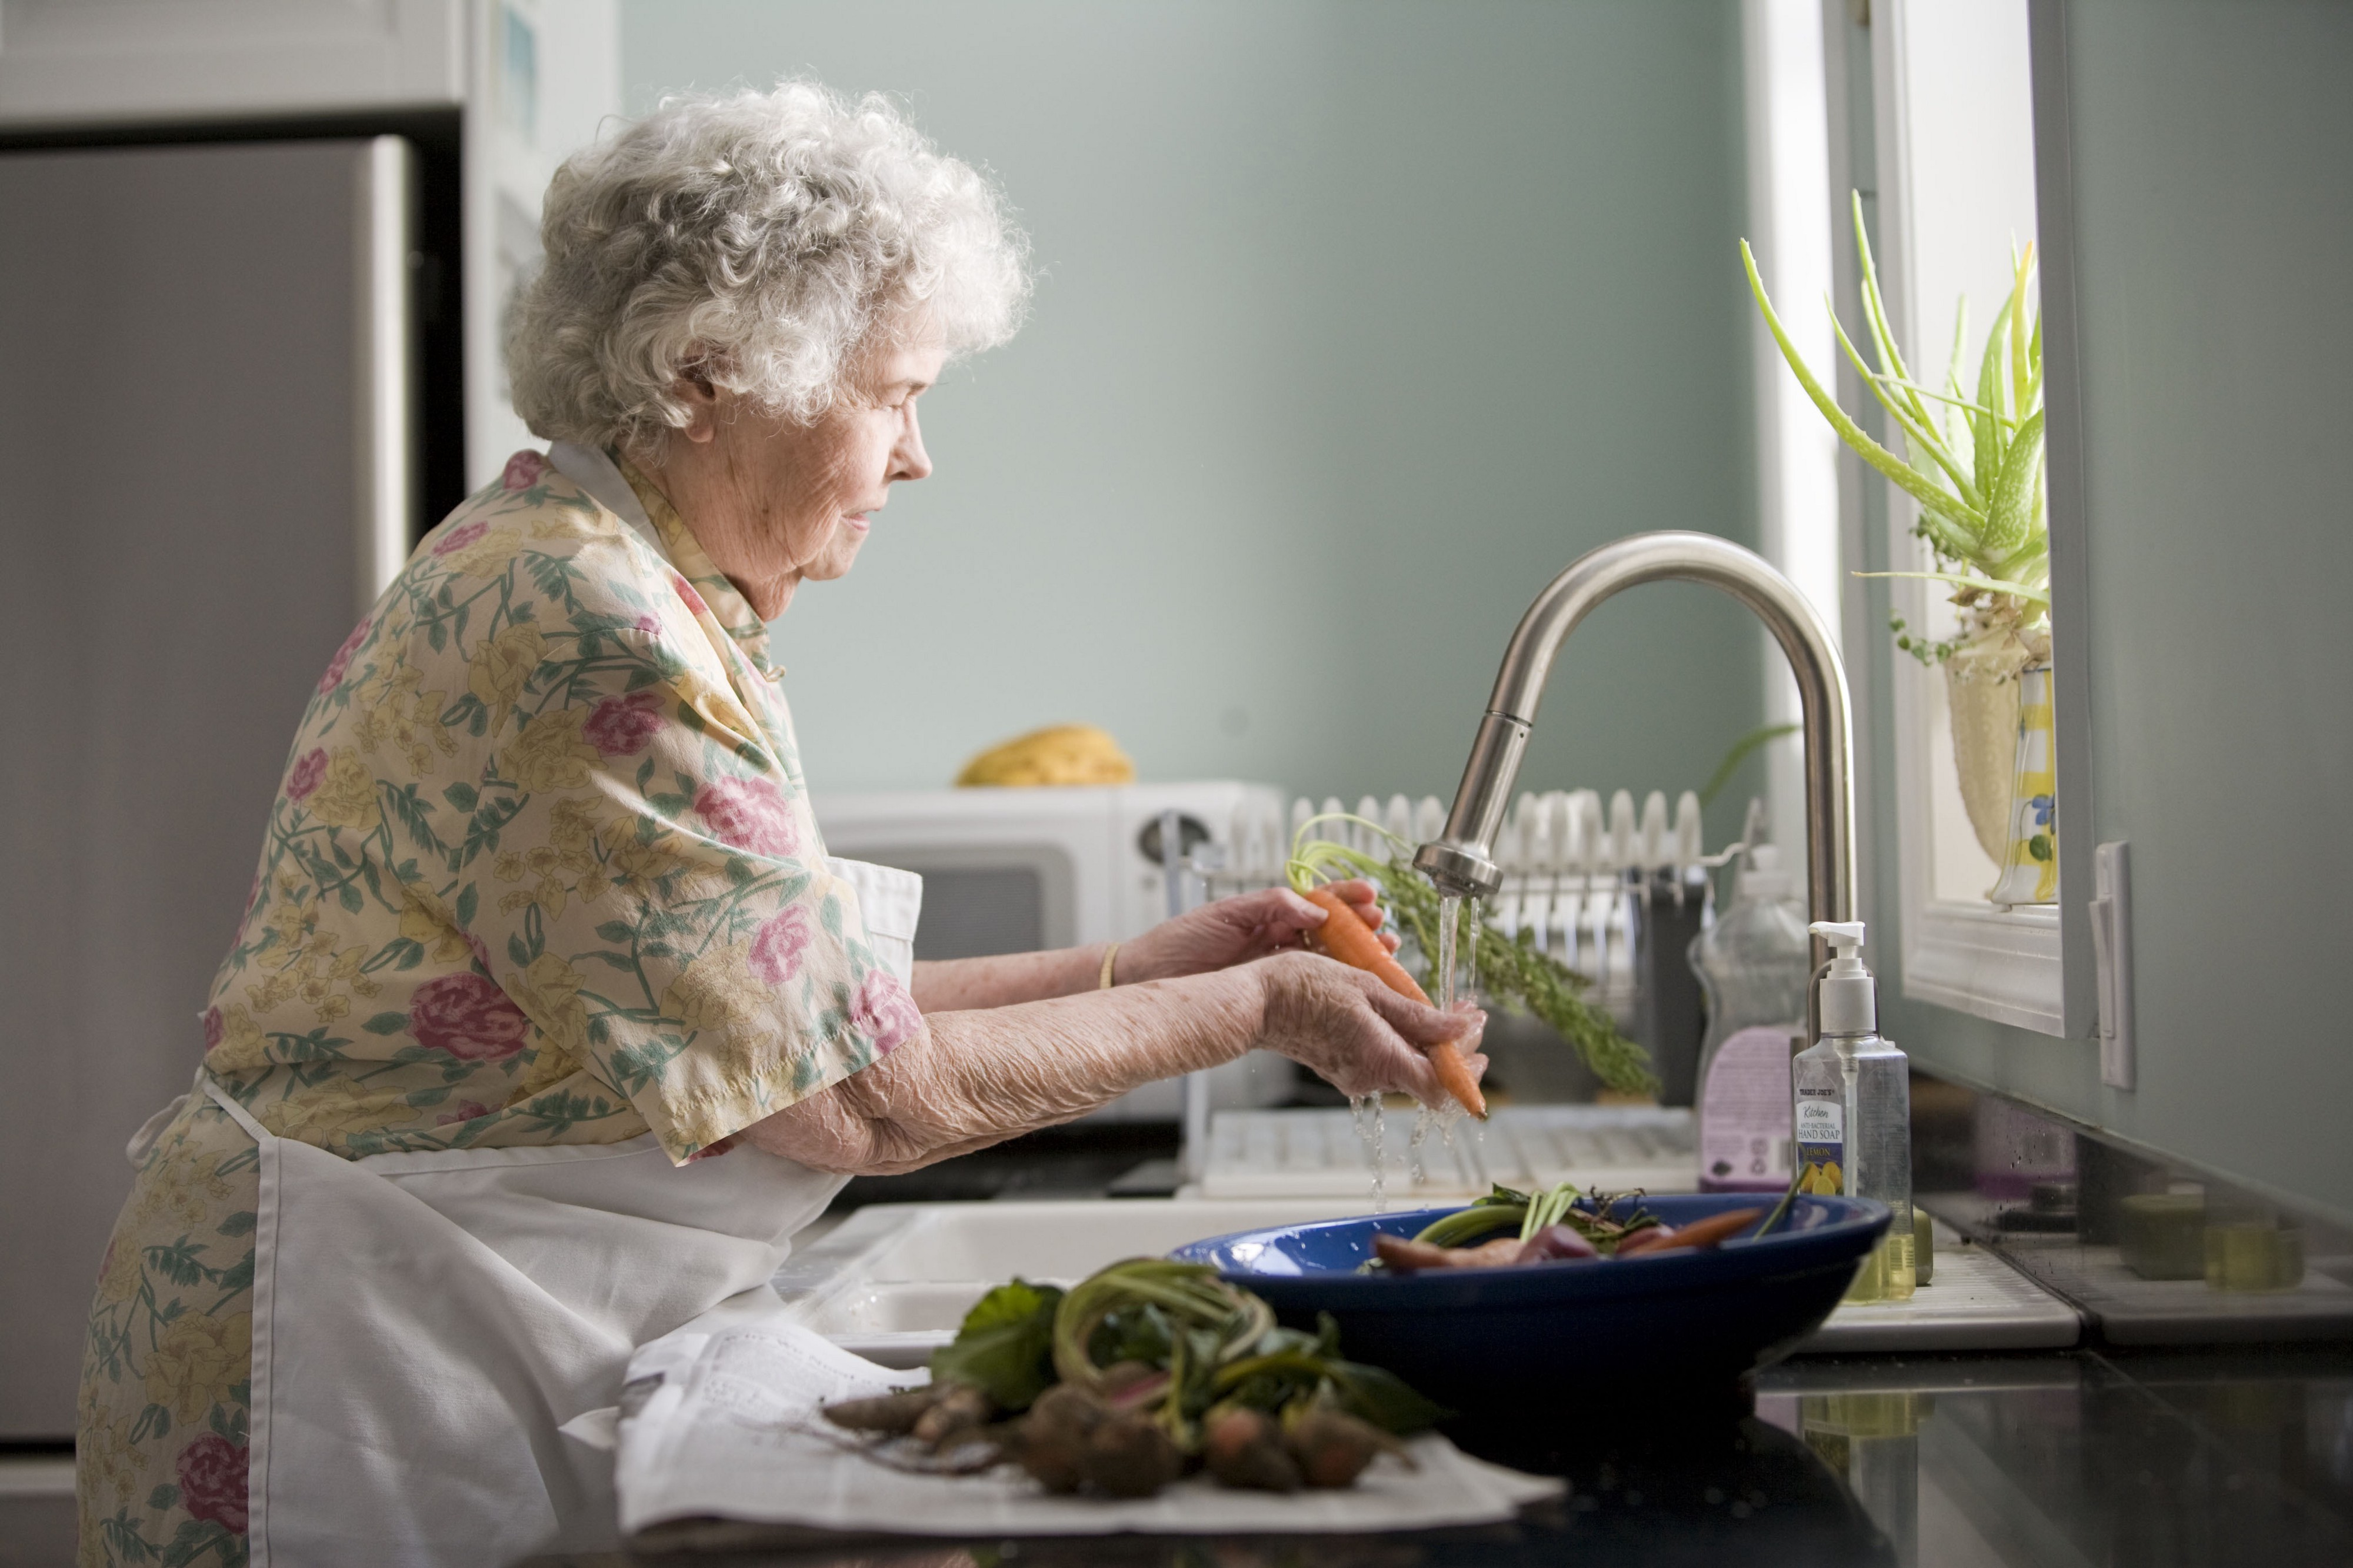 Image of a matronly grandmother in a white apron washing vegetables at her clean sink.